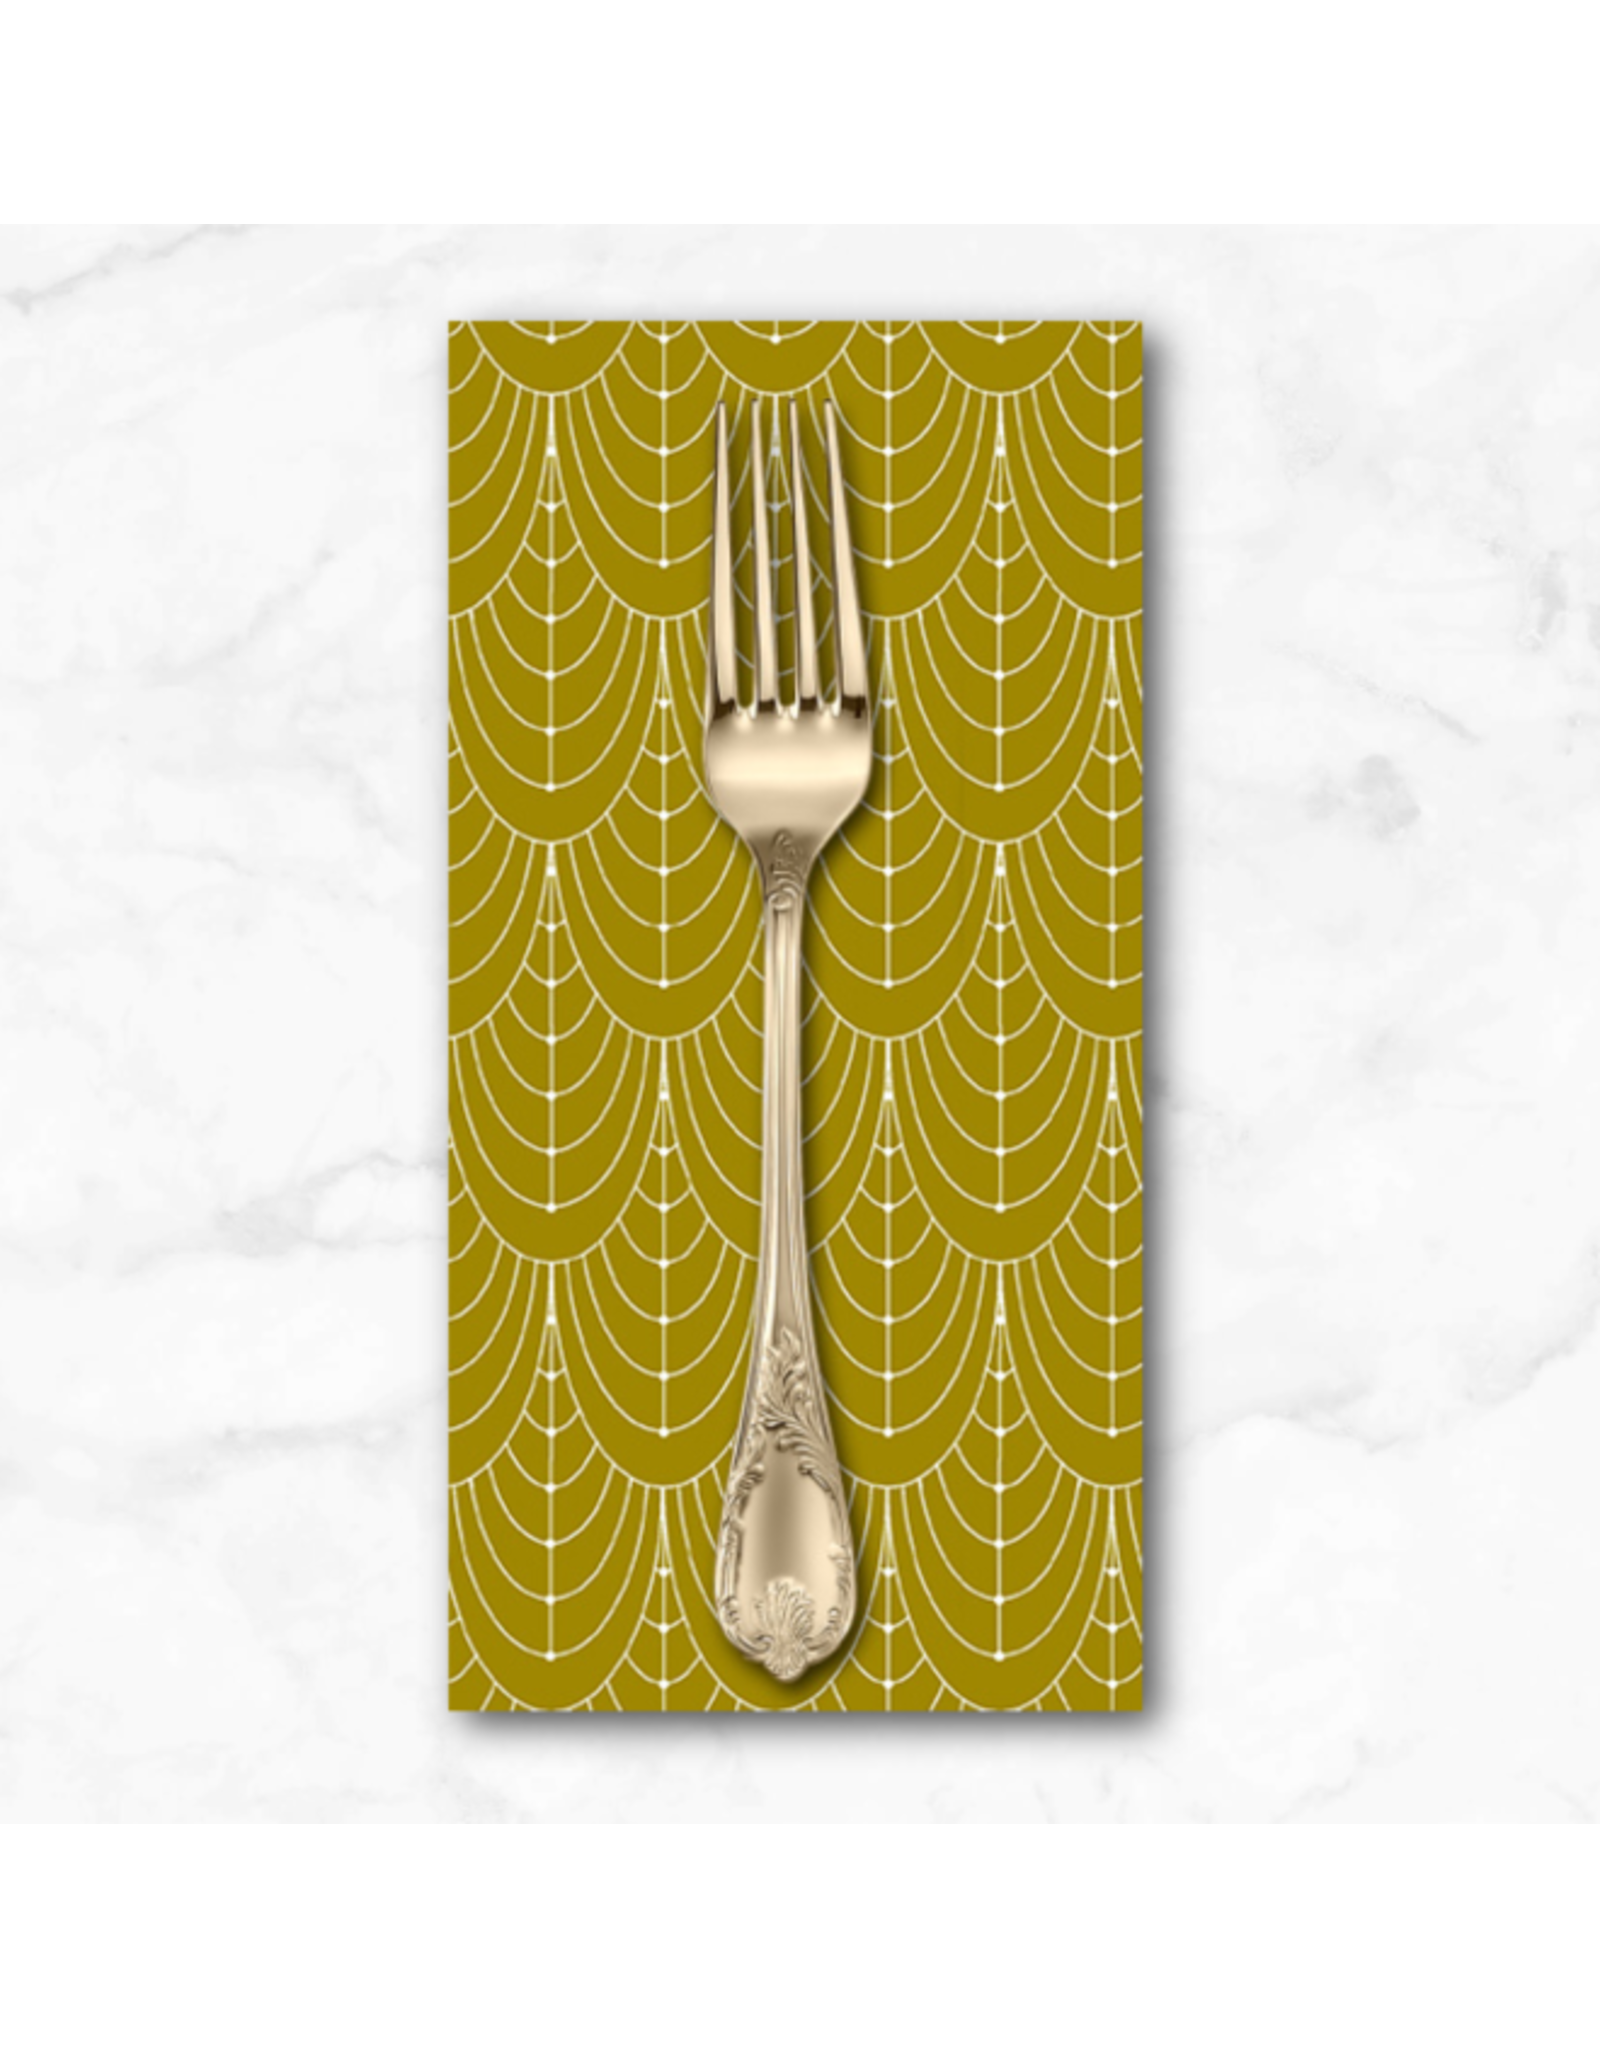 PD's Giucy Giuce Collection Century Prints, Deco Curtains in Brass, Dinner Napkin